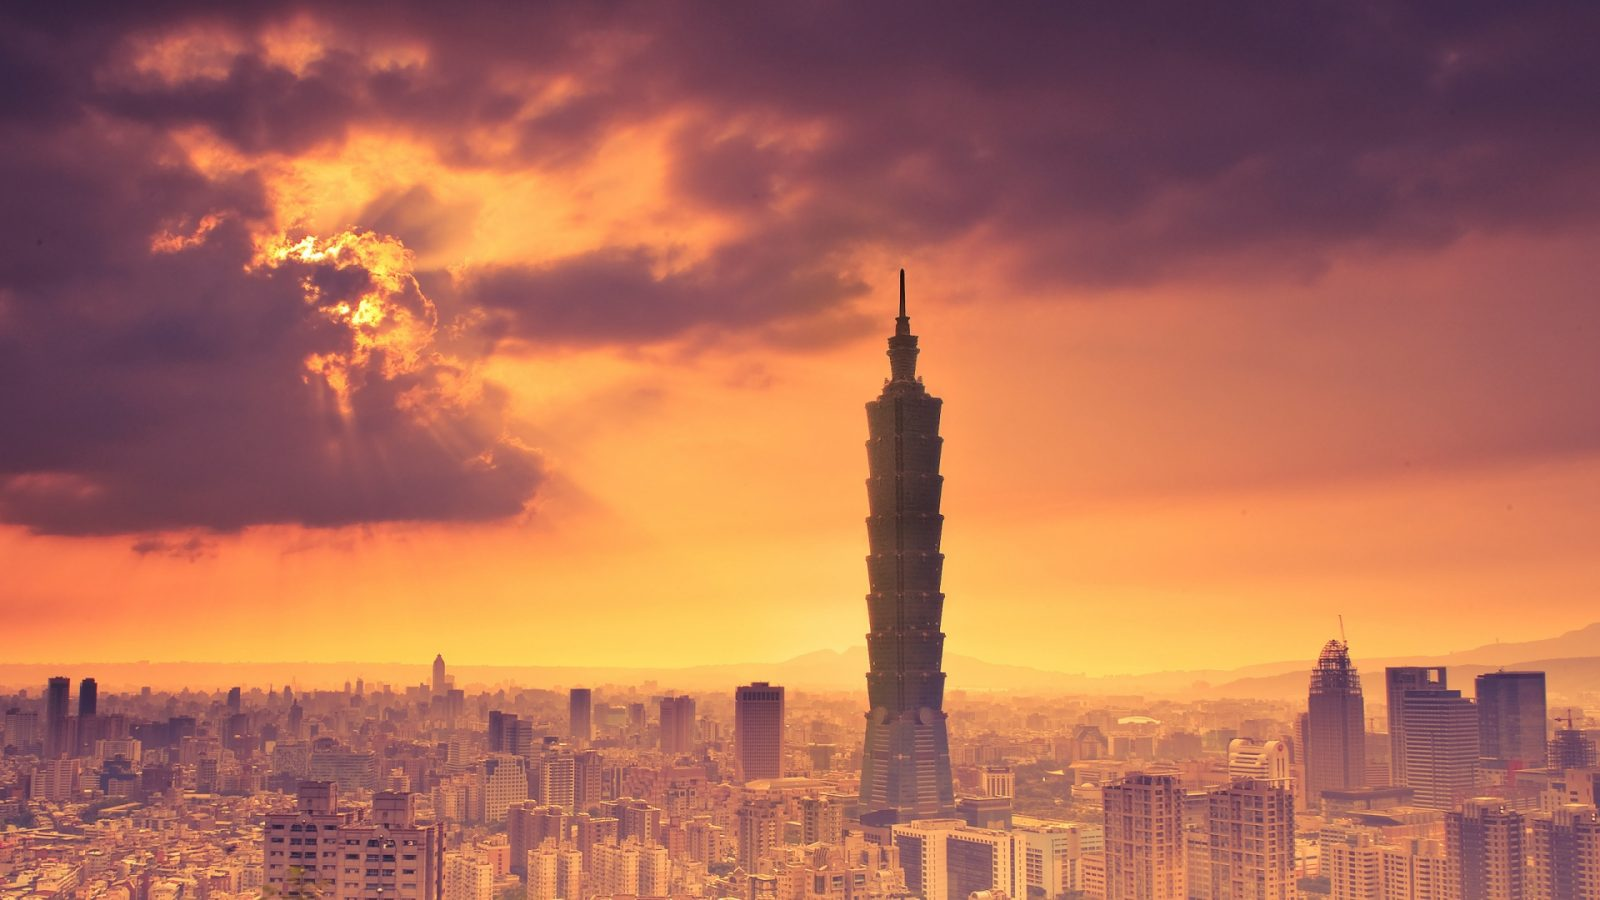 tower_building_taipei_taiwan_china_sky_clouds_sun_ray_58286_1920x1080